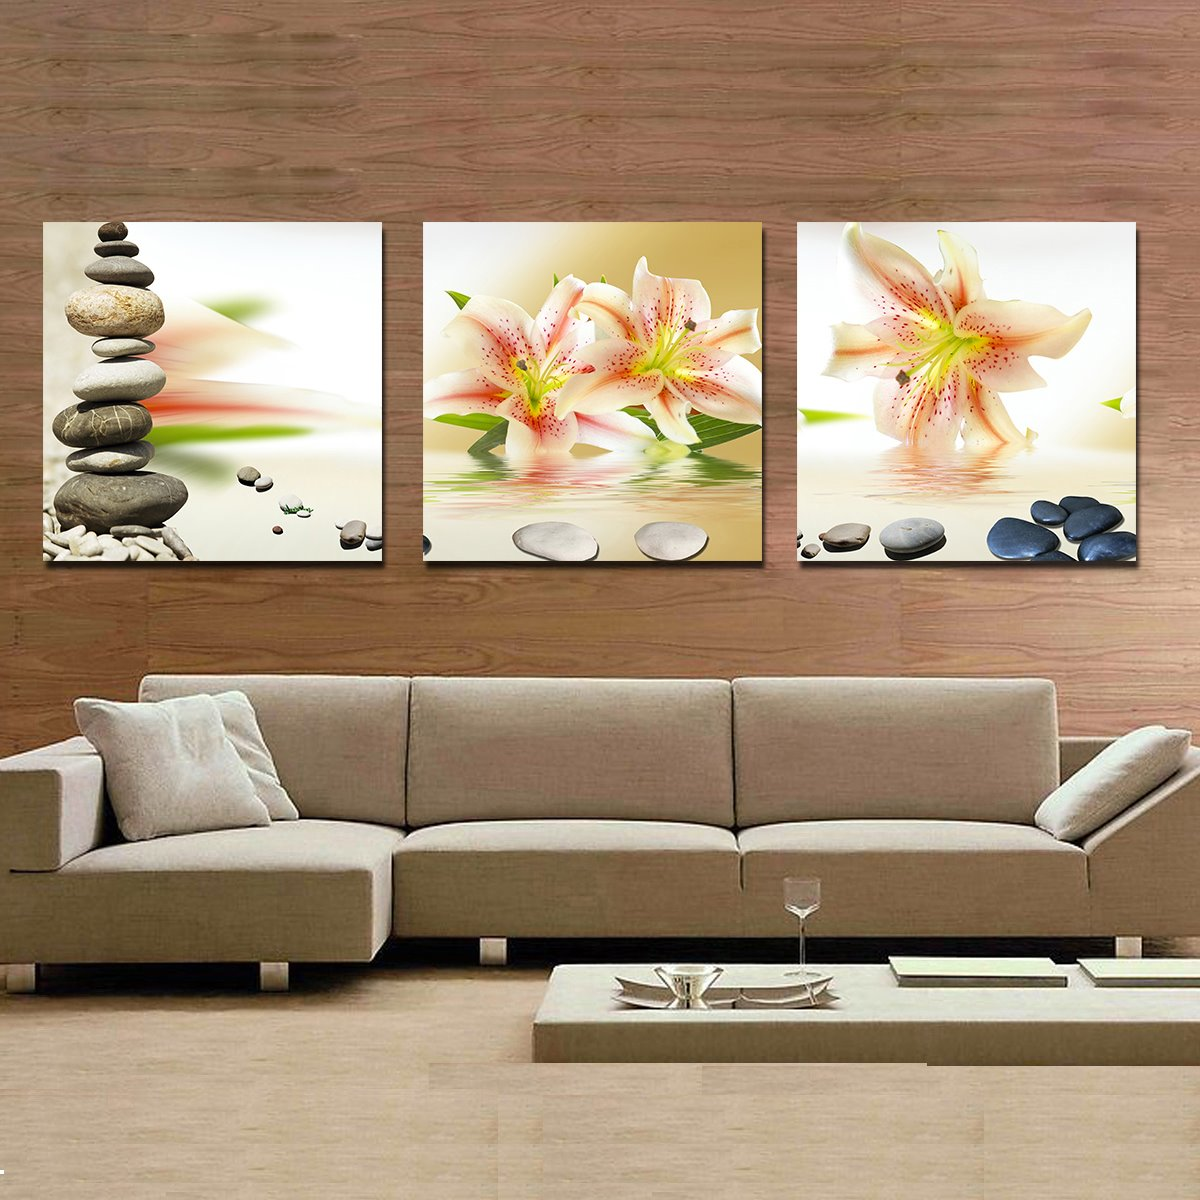 Fragrant Vivid Lily and Cobblestone Film Art Wall Prints